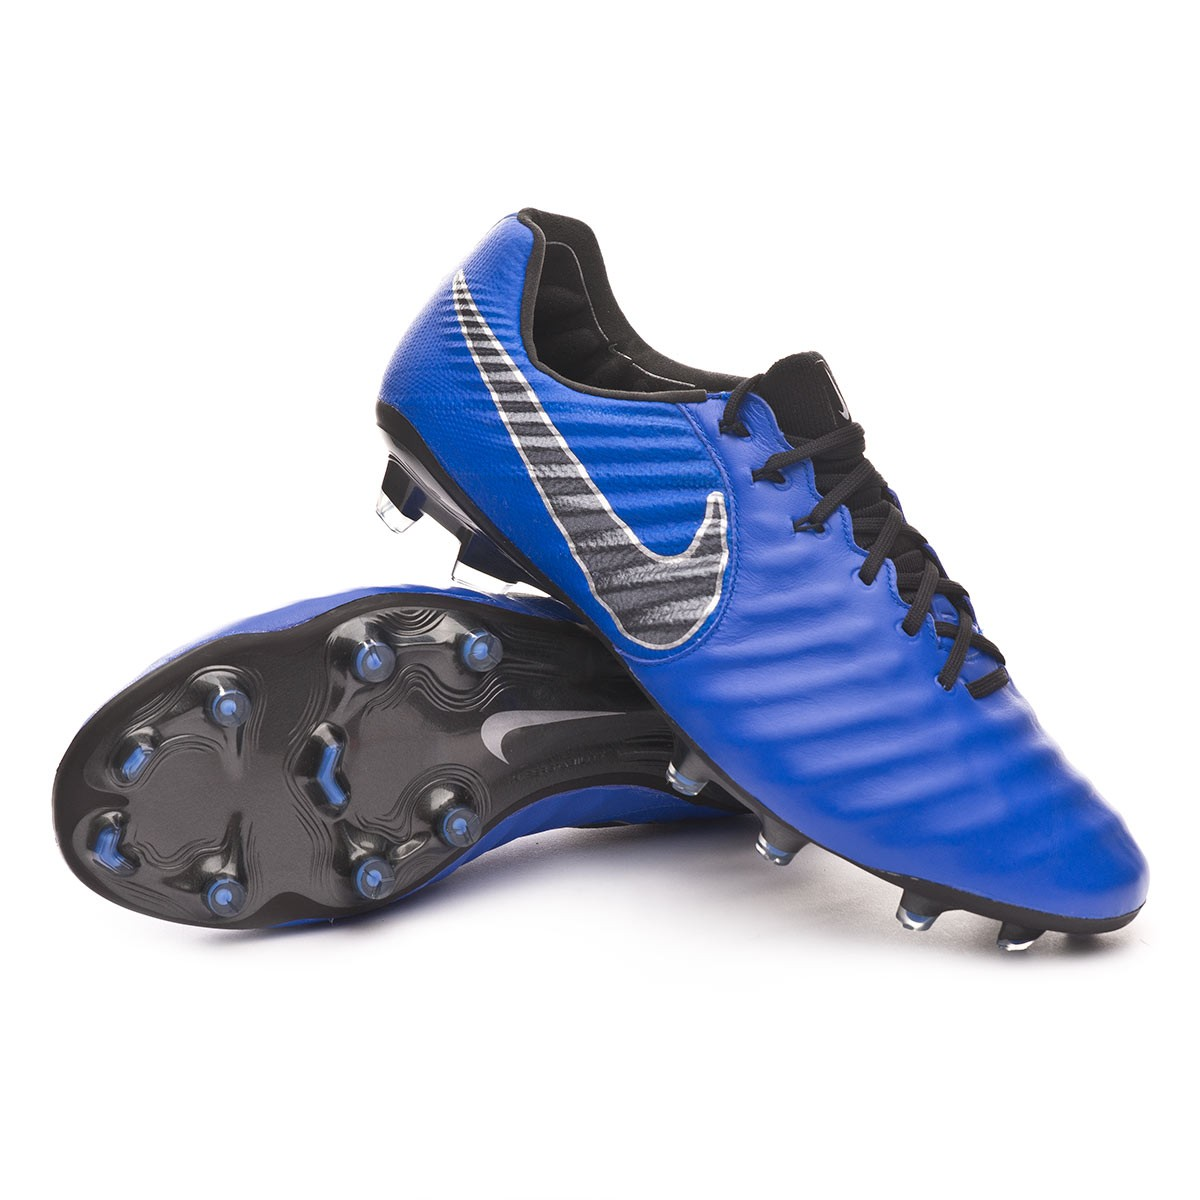 interior superstición intervalo  Football Boots Nike Tiempo Legend VII Elite FG Racer blue-Black-Metallic  silver - Football store Fútbol Emotion